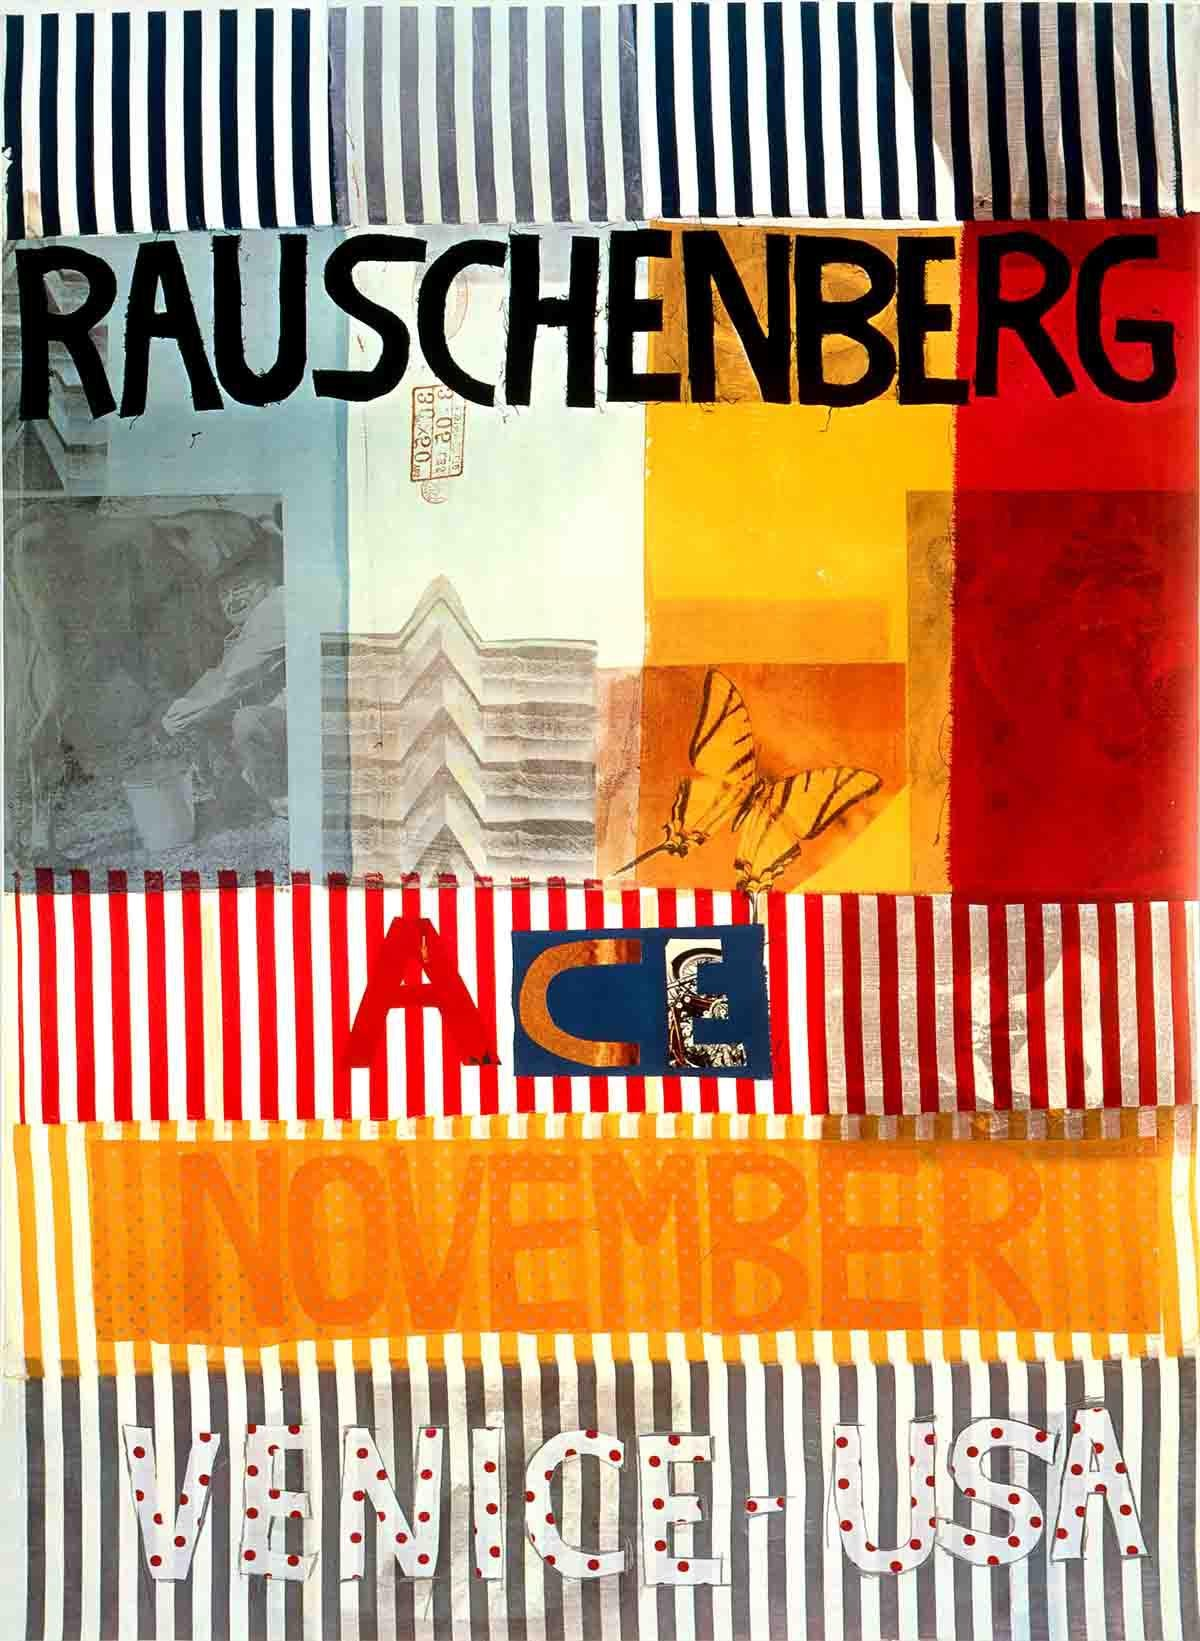 1977 Ace Gallery Exhibition Poster By Robert Rauschenberg